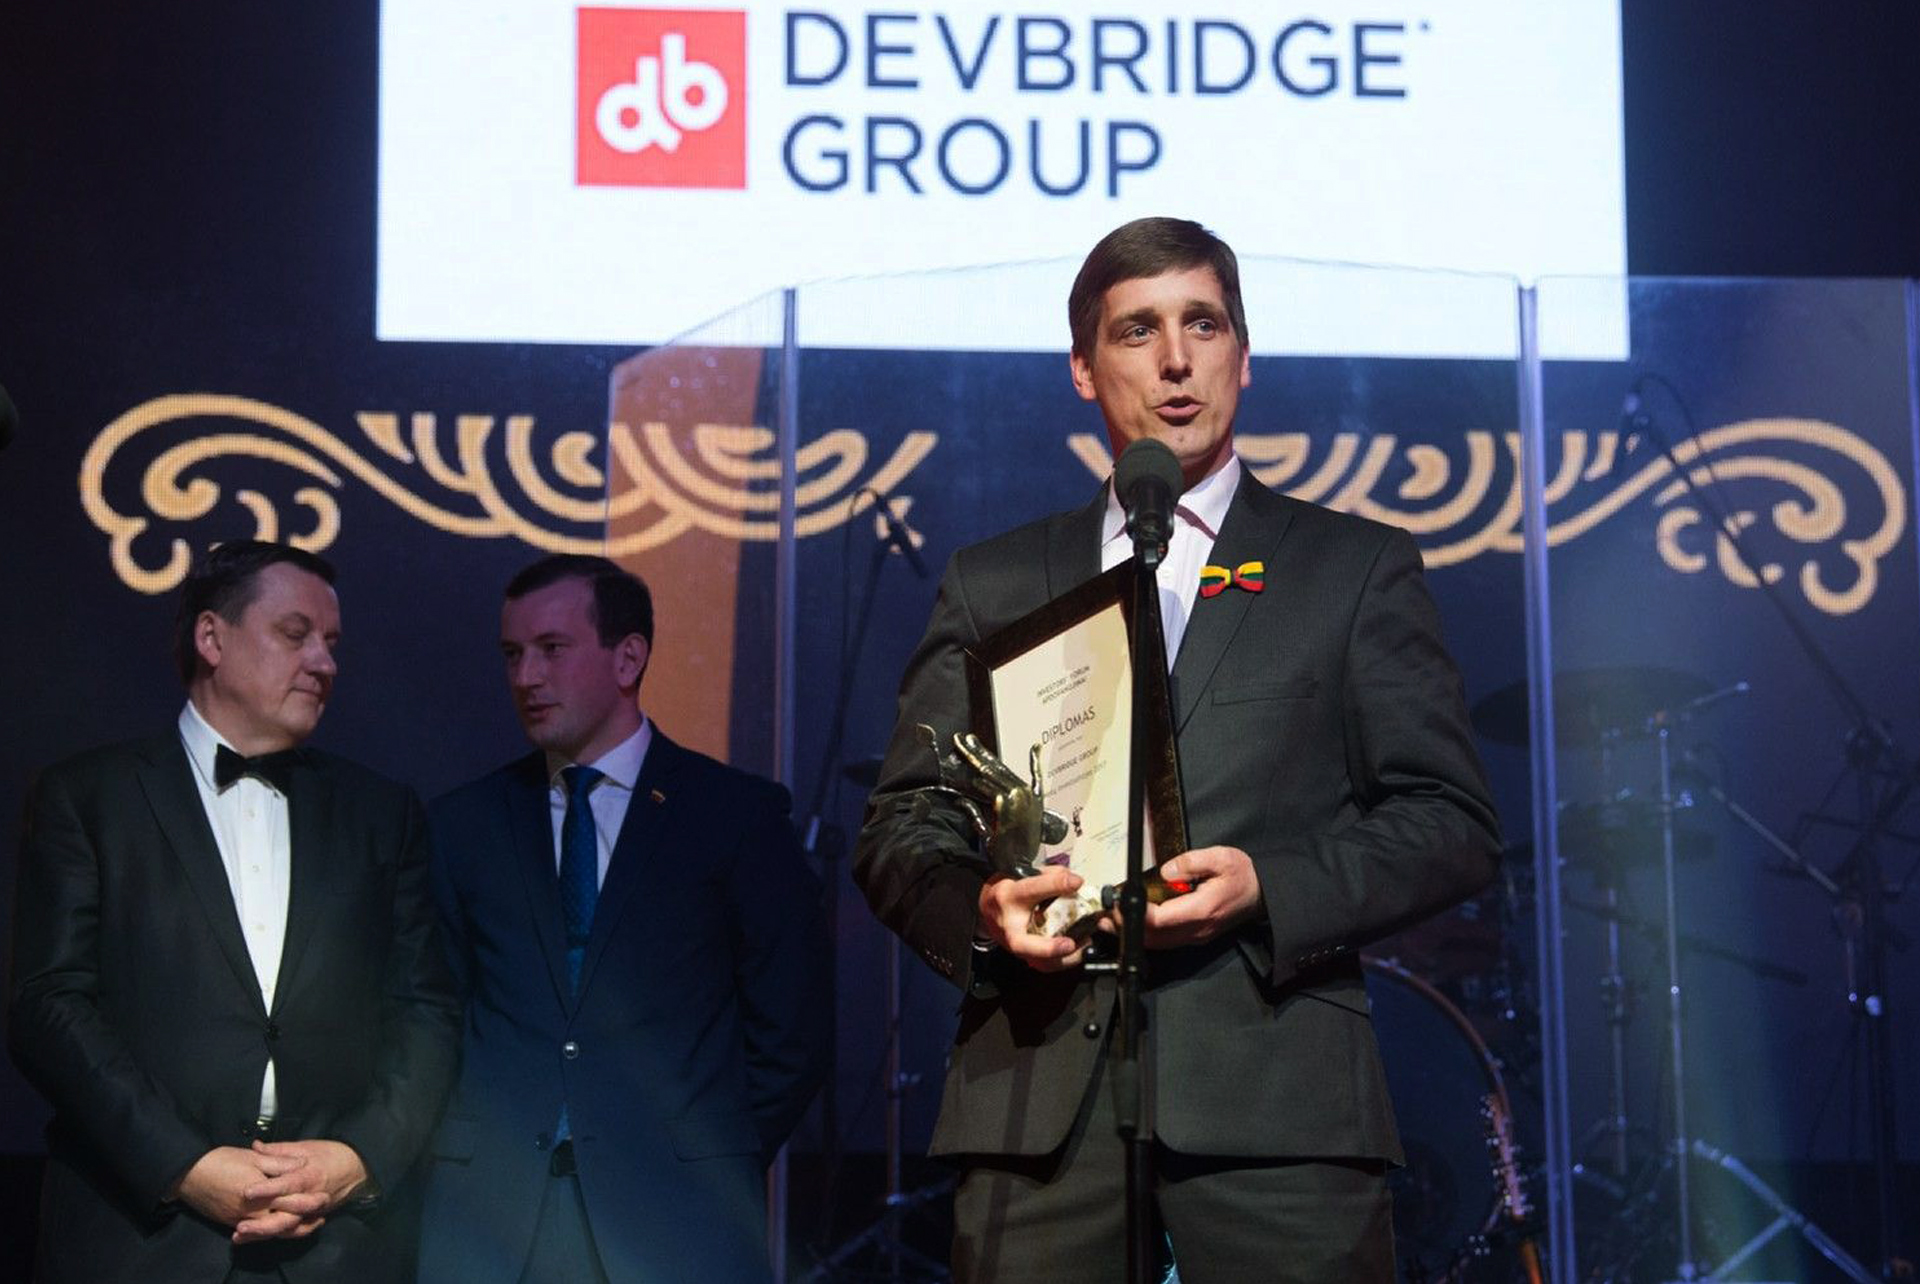 Devbridge awarded investor of the year award